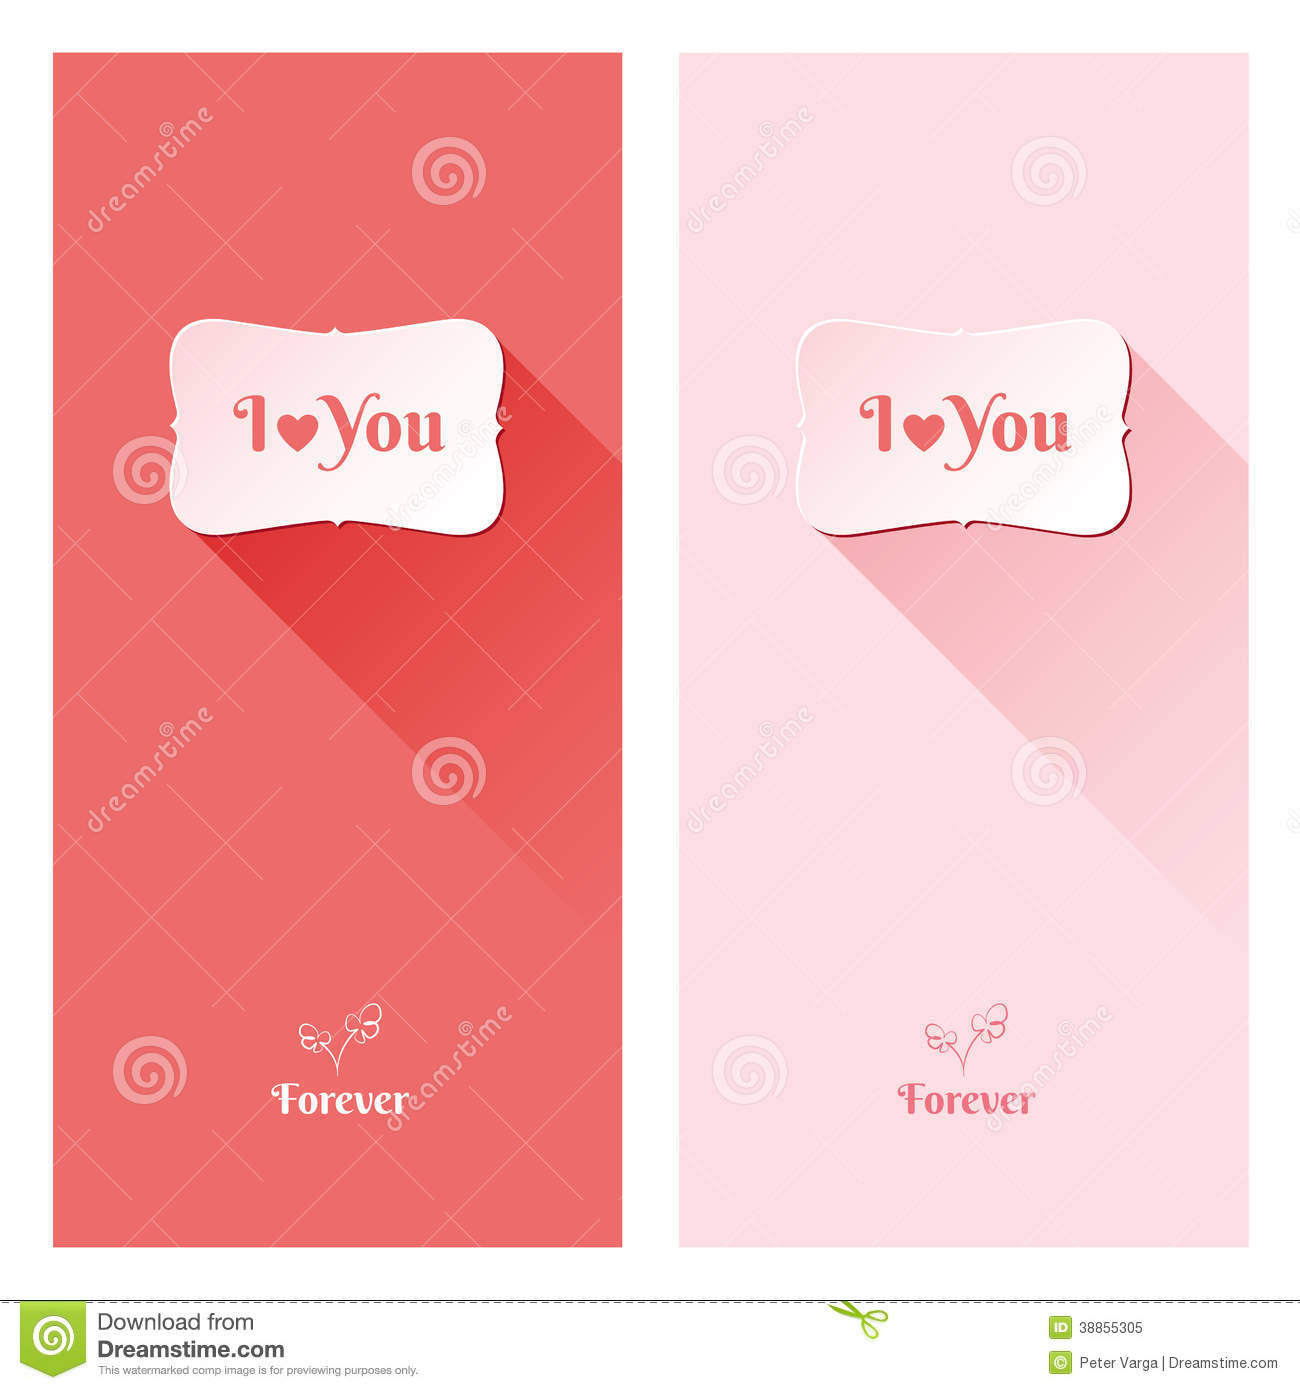 Beautiful love greeting cards stock vector illustration of sign beautiful love greeting cards royalty free stock photo kristyandbryce Choice Image